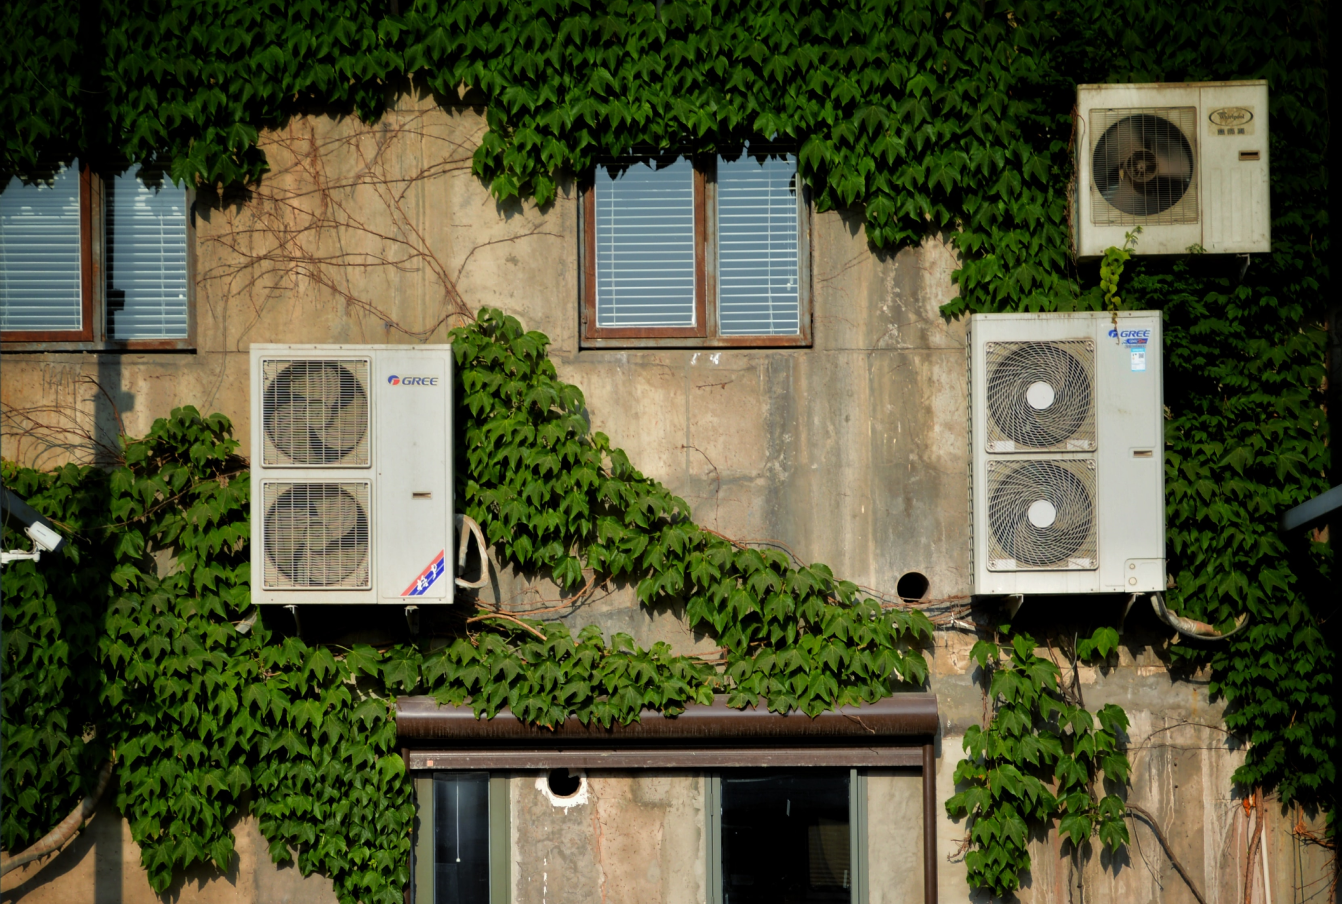 Air conditioning units on the side of a building, contributing to climate change.